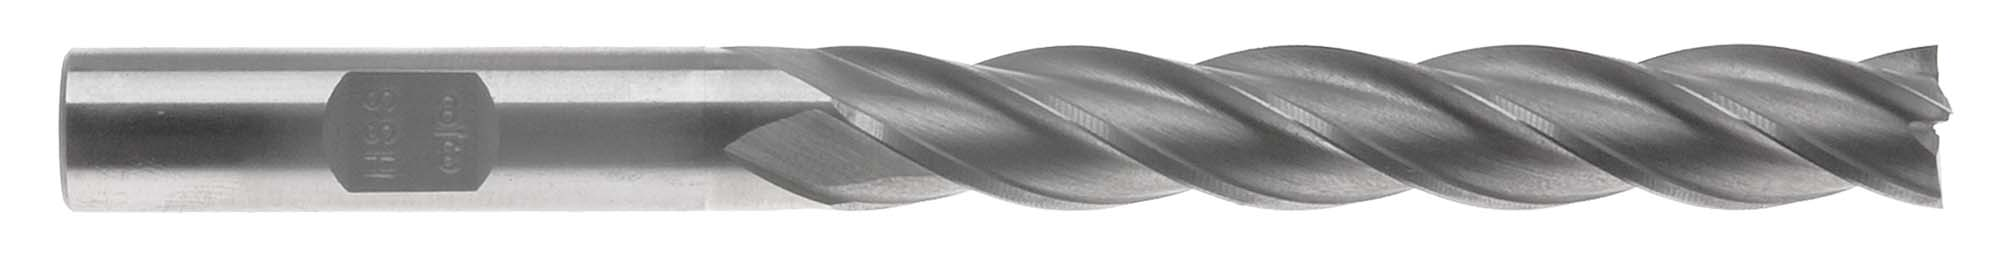 "EM-FX12  3/8"" 4 Flute Extra Long End Mill- 3/8"" Shank, High Speed Steel"